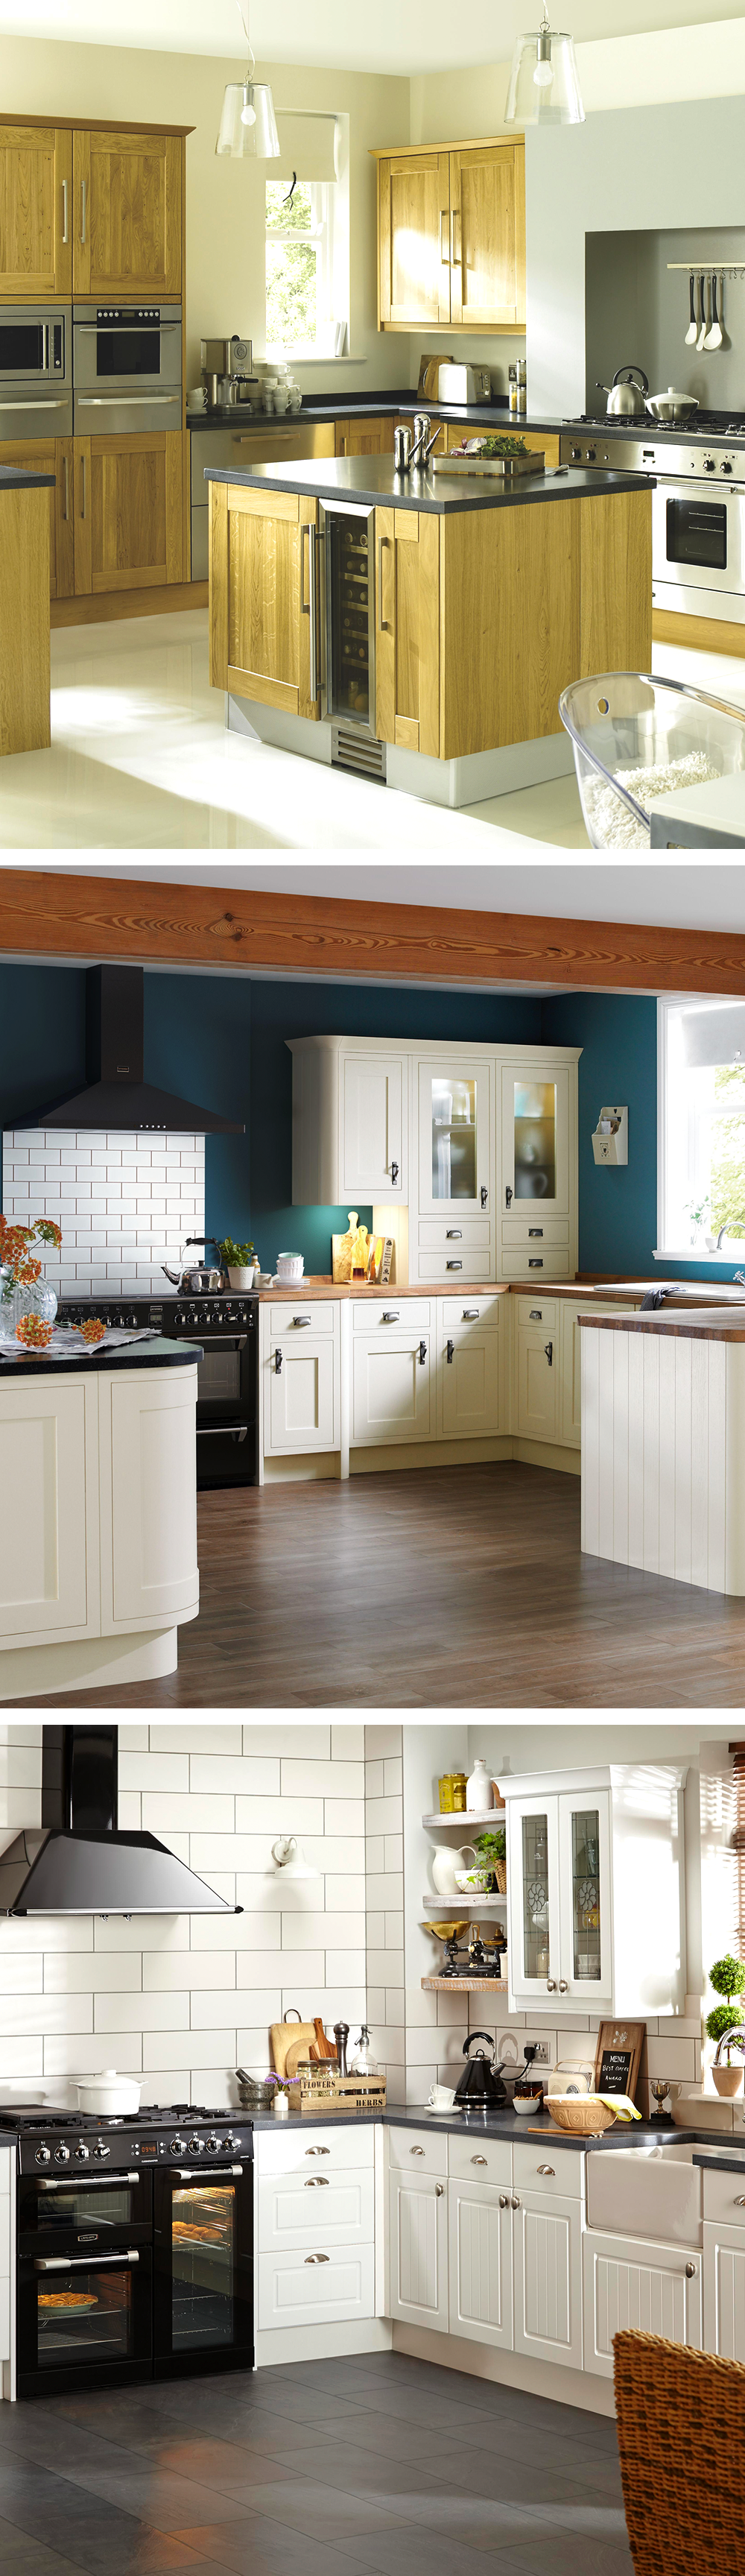 Country kitchens create a cosy feel and really turn the